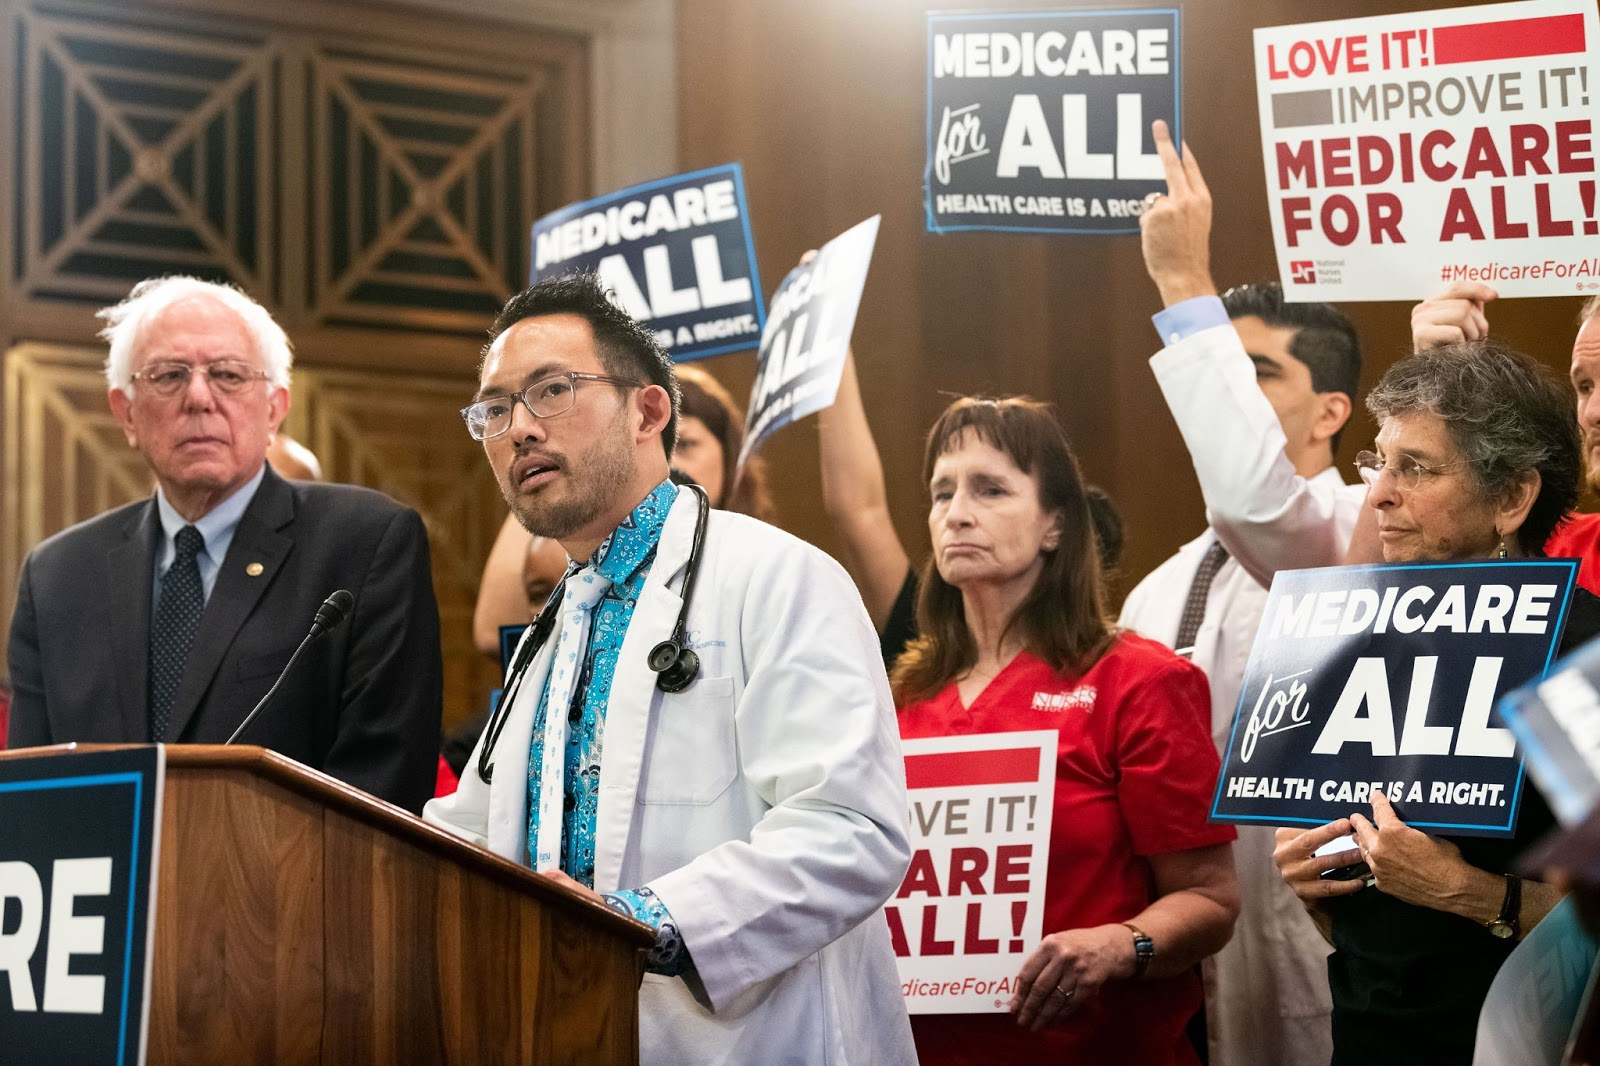 Bernie Sanders, Medicare for All Act of 2019